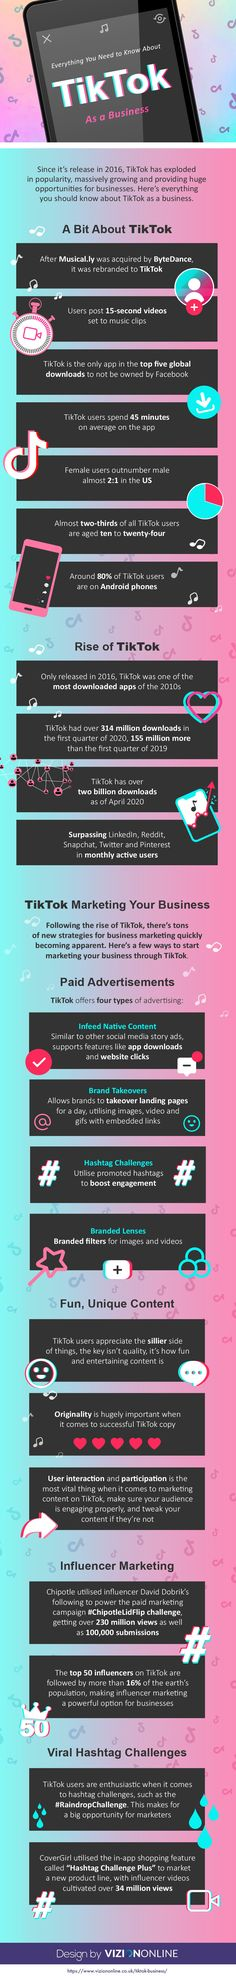 Everything You Need To Know About Tiktok As A Business Cool Infographics Social Media Infographic Business Infographic Infographic Marketing